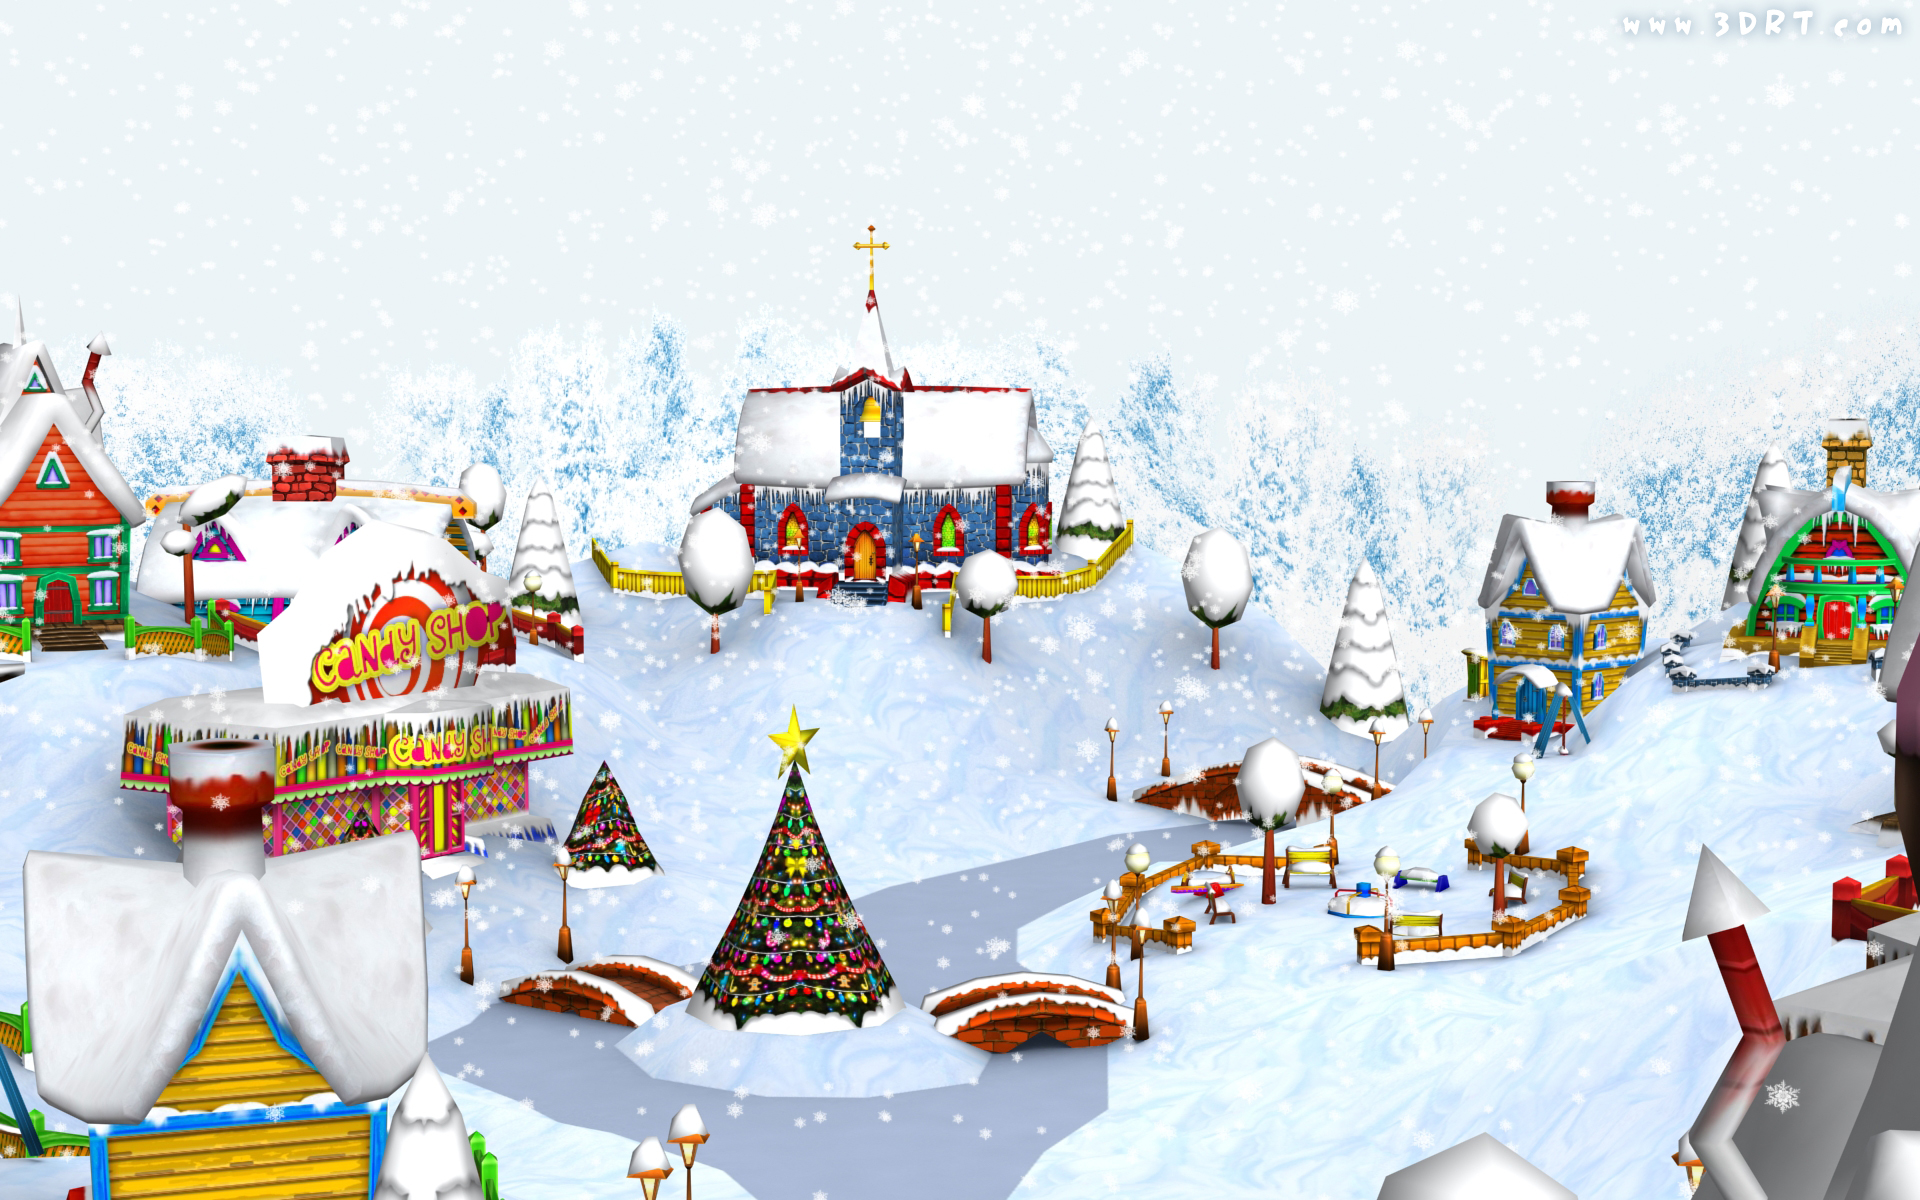 Christmas Village wallpaper   170303 1920x1200